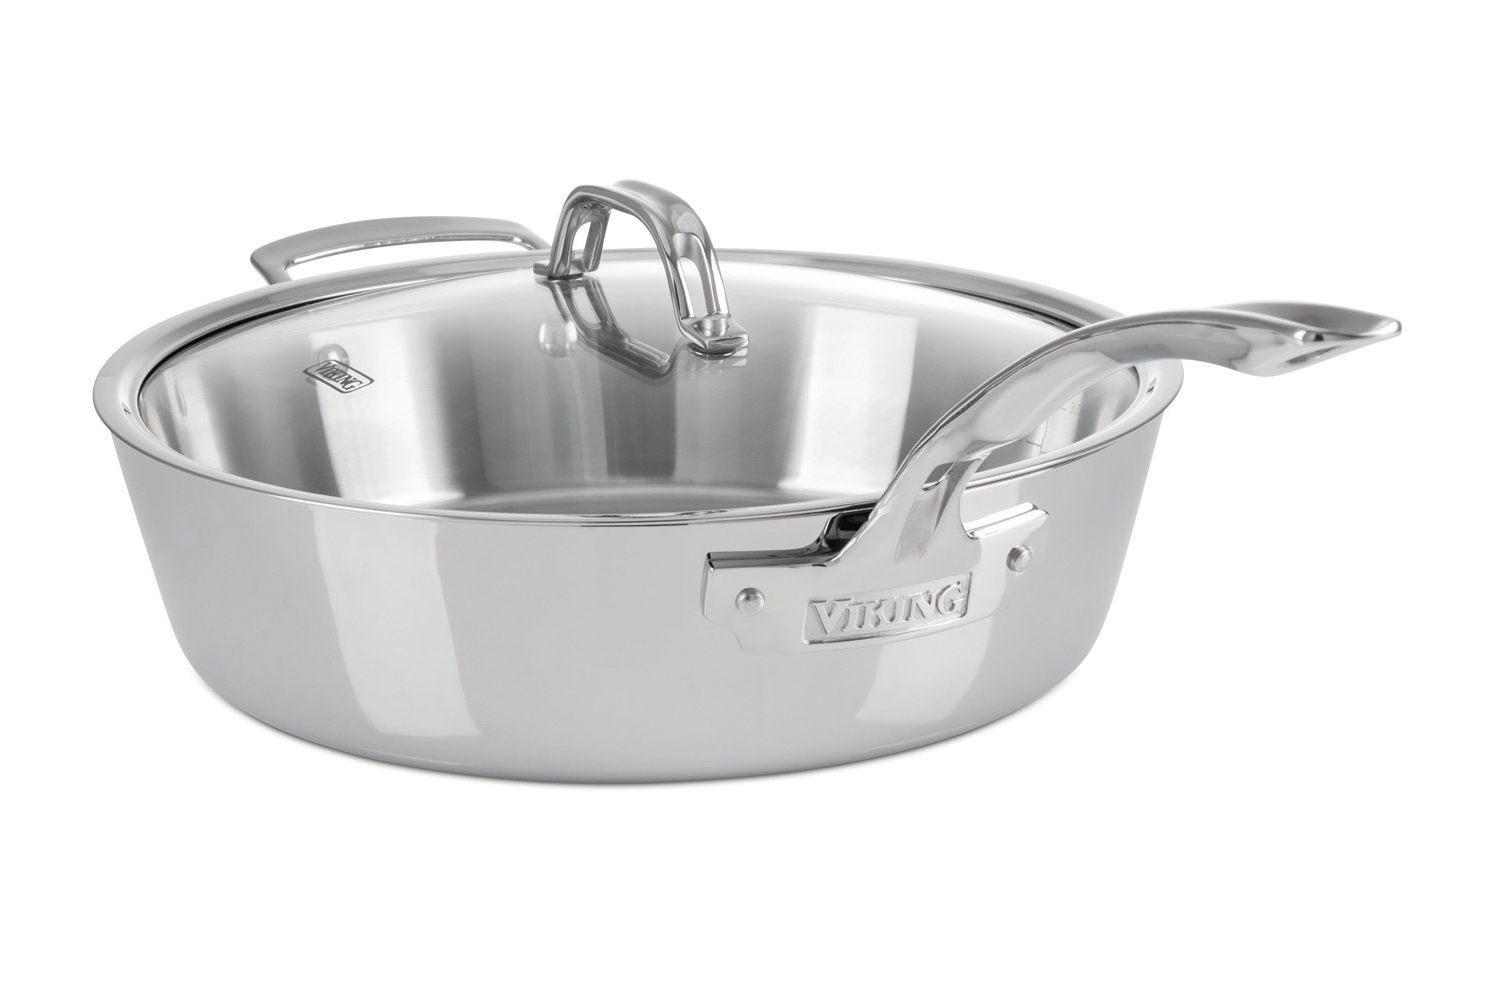 Viking Contemporary 3 Ply Stainless Steel Saute Pans